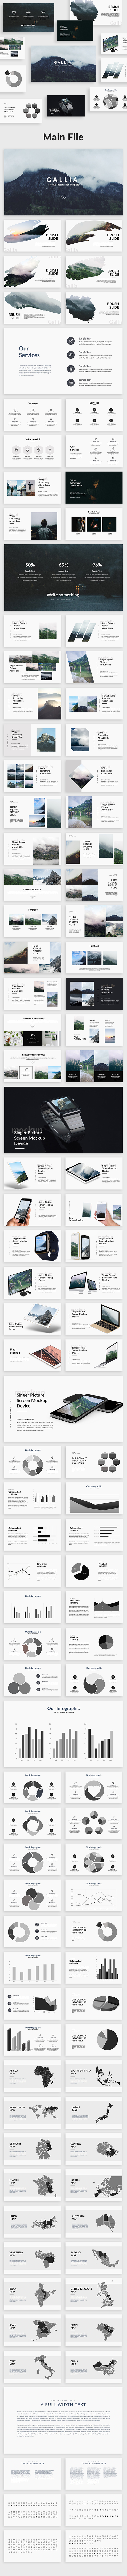 Gallia - Creative Keynote Template - Creative Keynote Templates